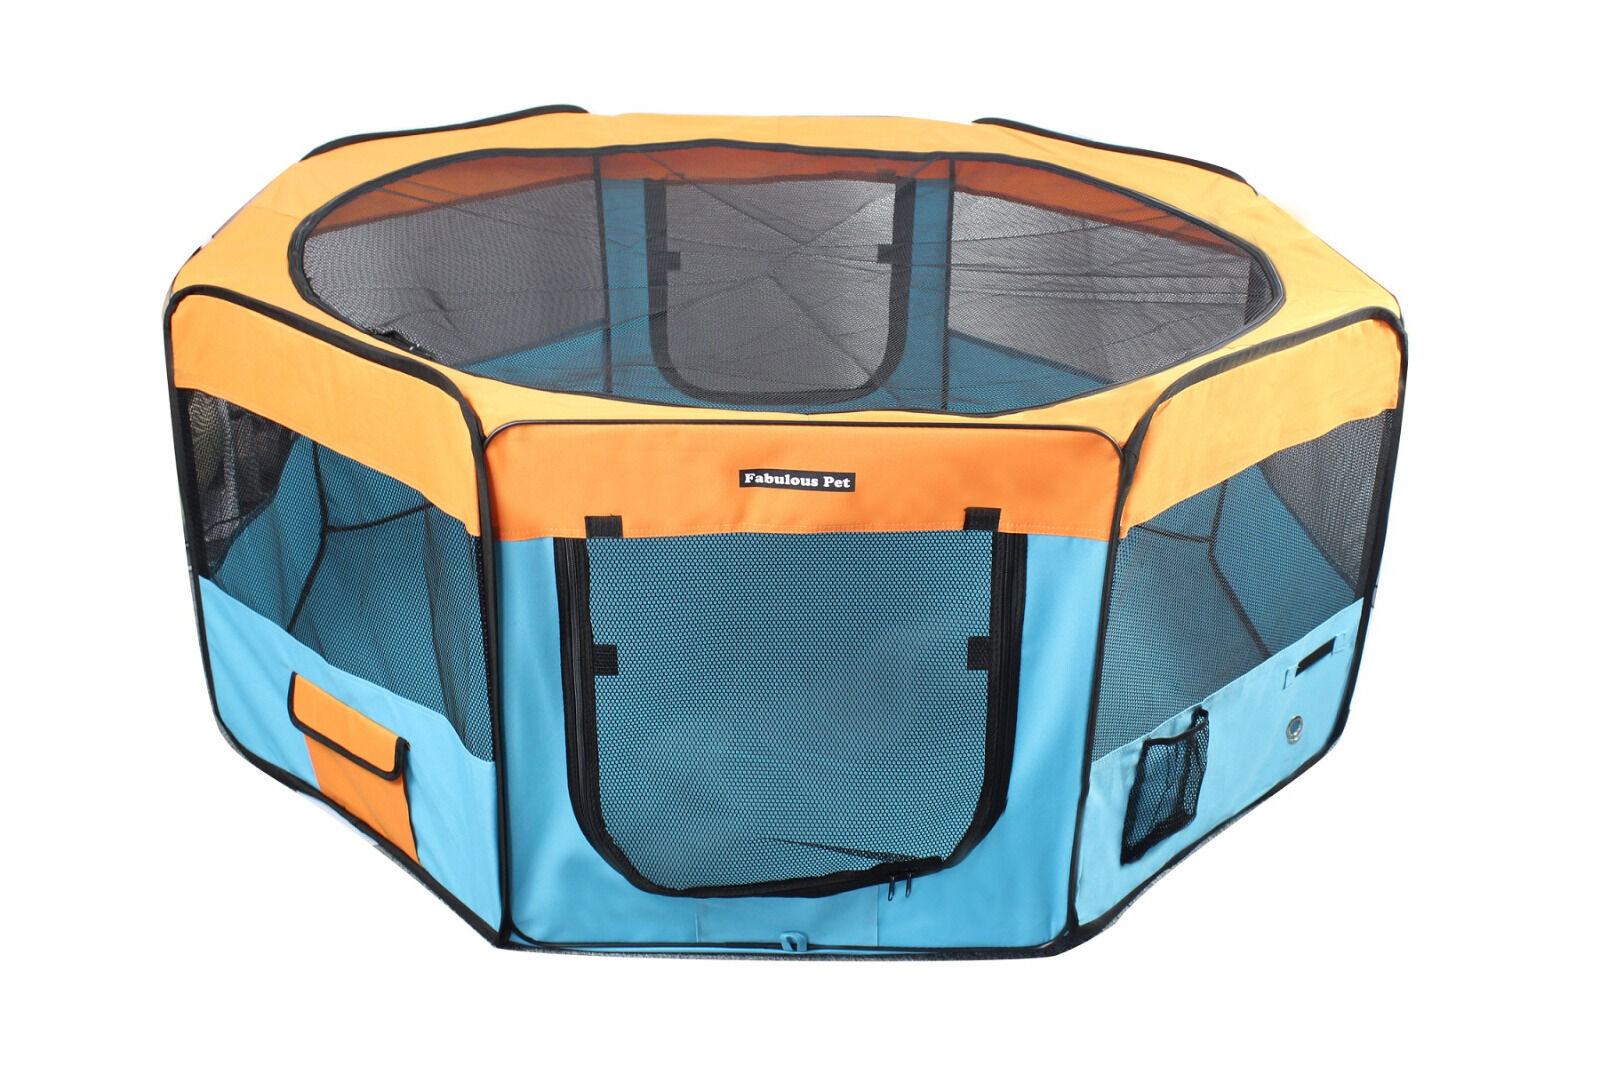 55  Portable Puppy Pet Dog Soft Tent Playpen Folding Crate Pen New - bluee orange